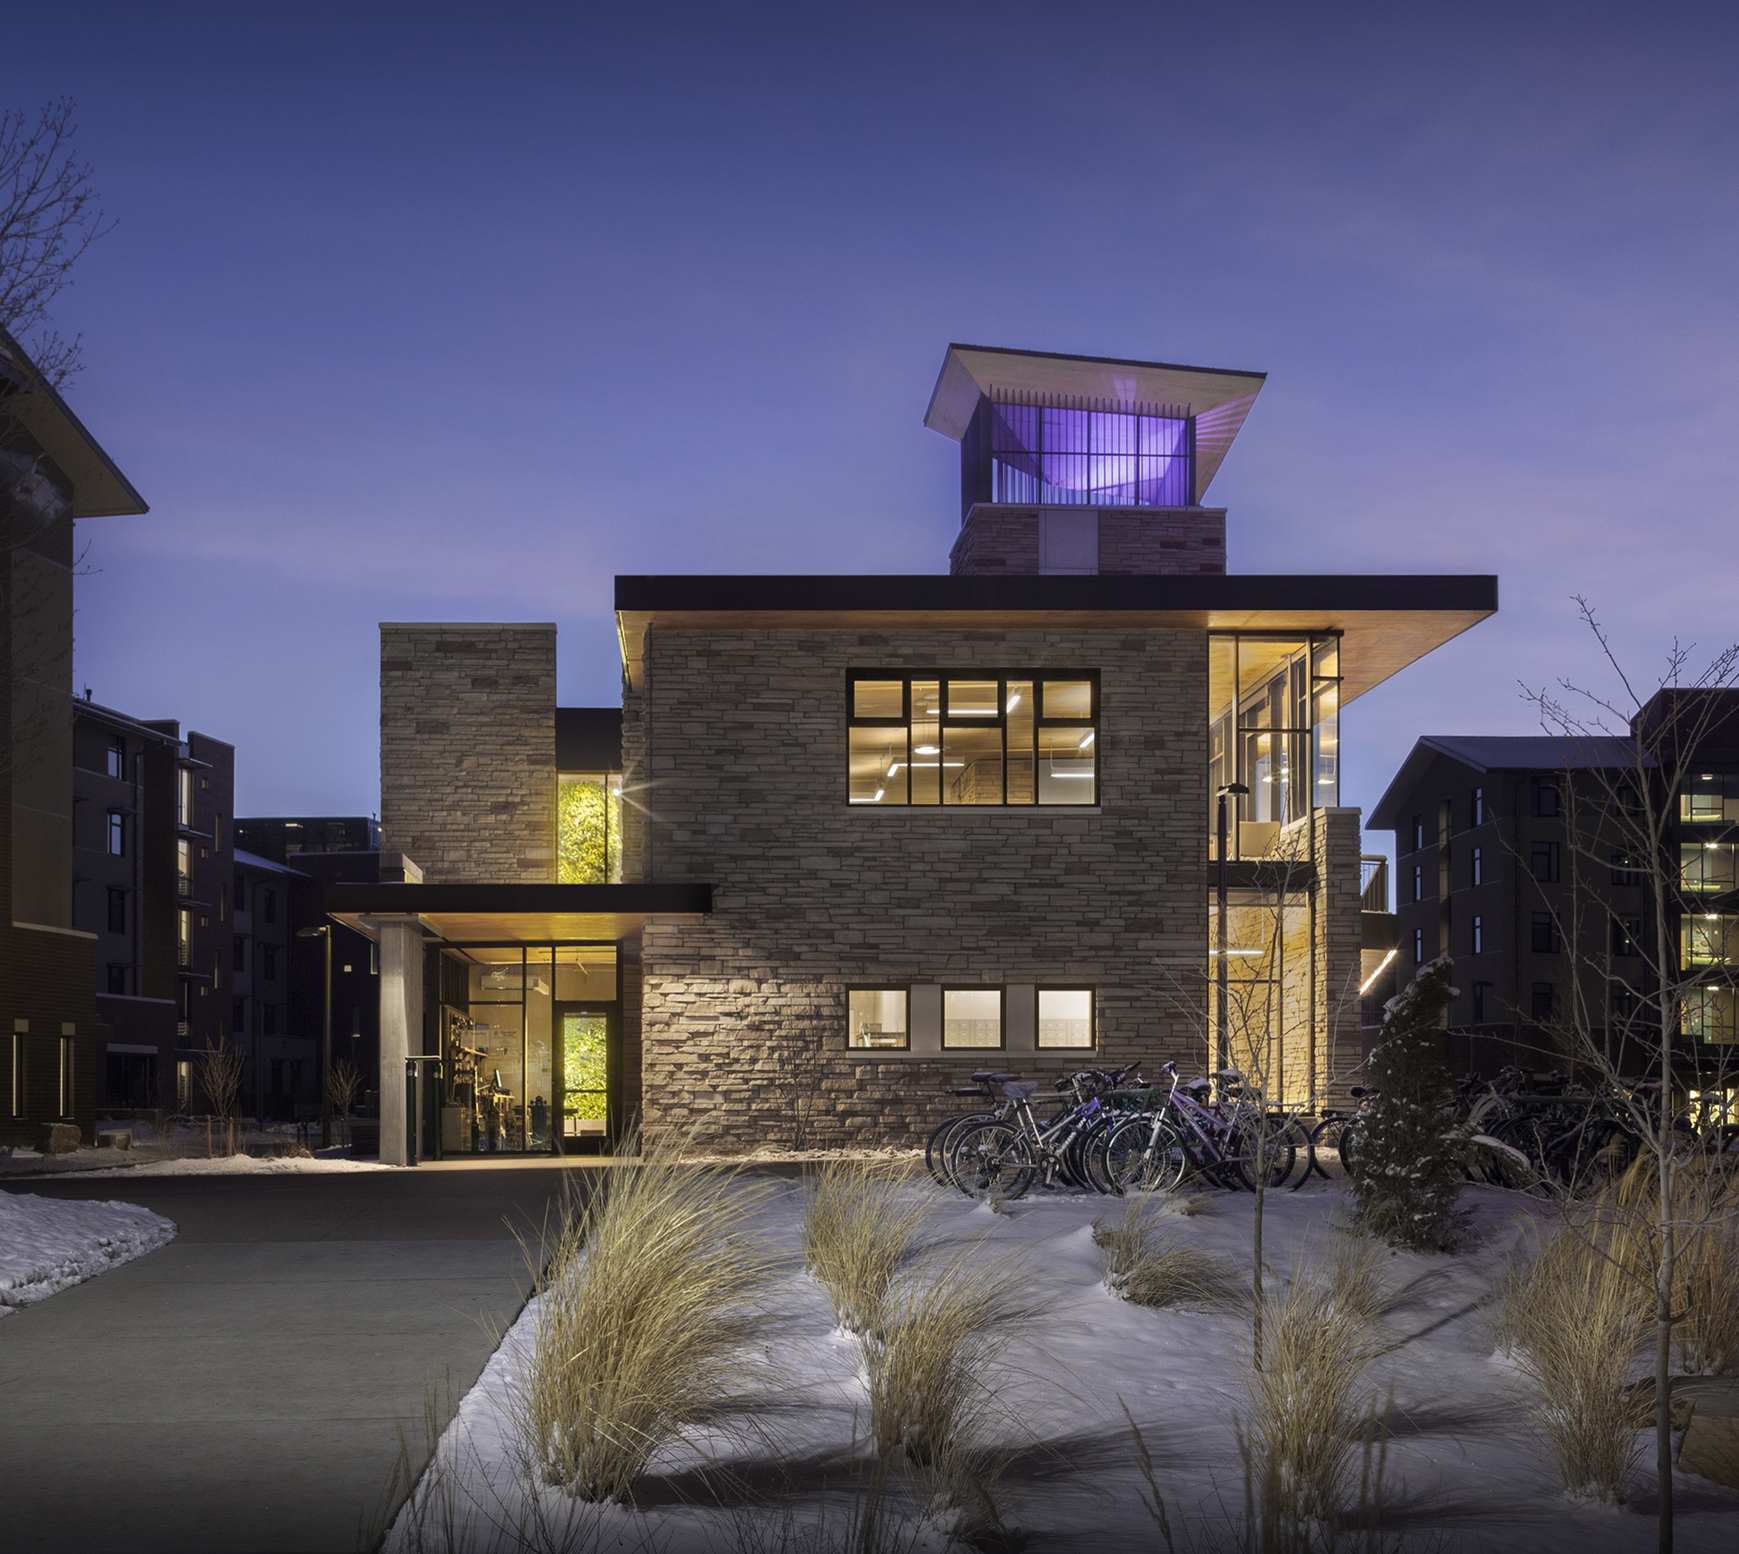 colorado_state_university_fort_collins_pavilion_laurel_village_tower.jpg